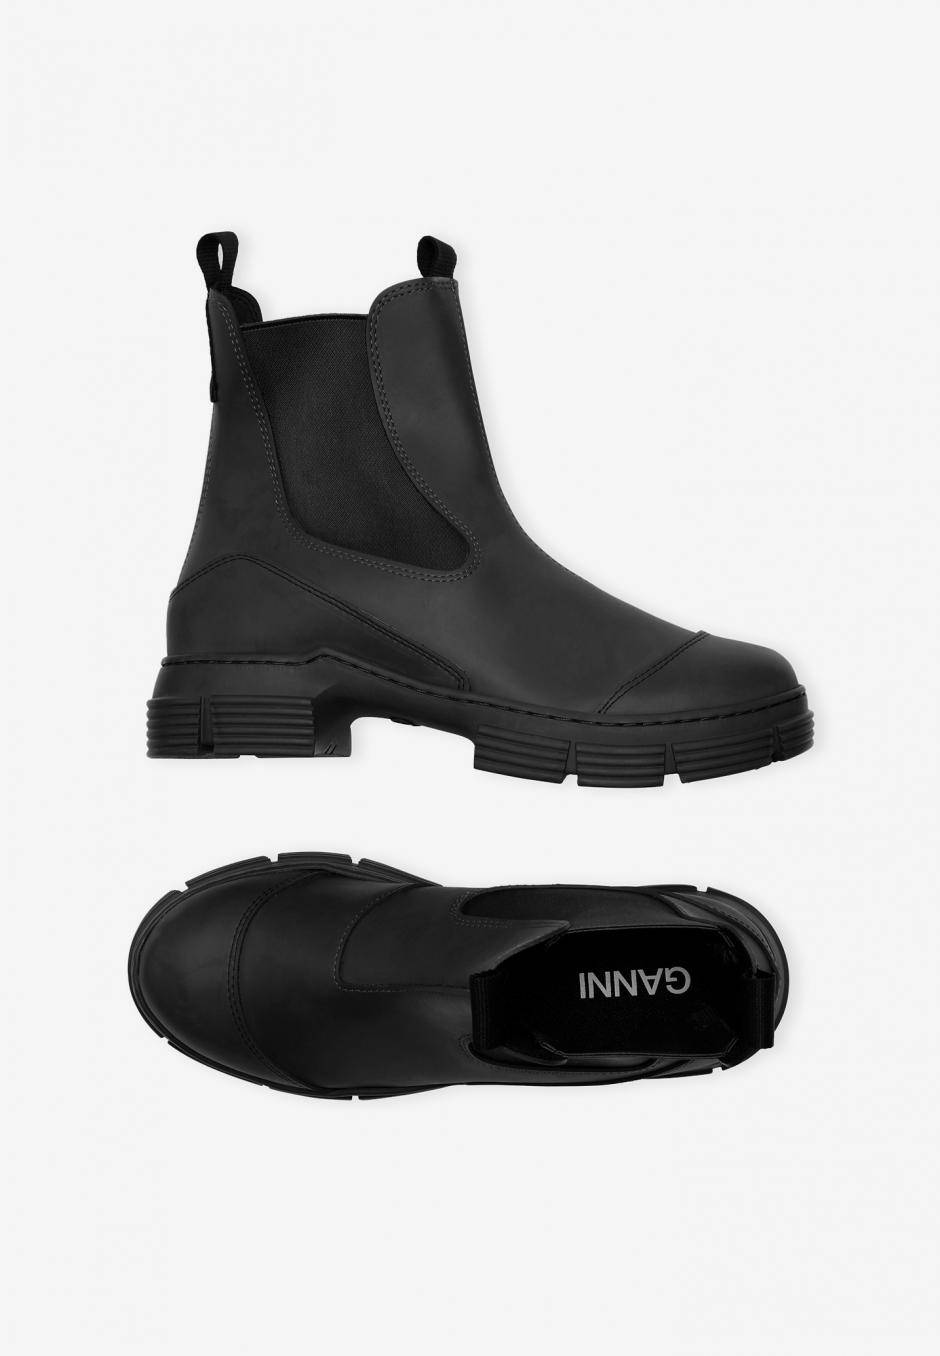 Ganni Recycled Rubber City Boots